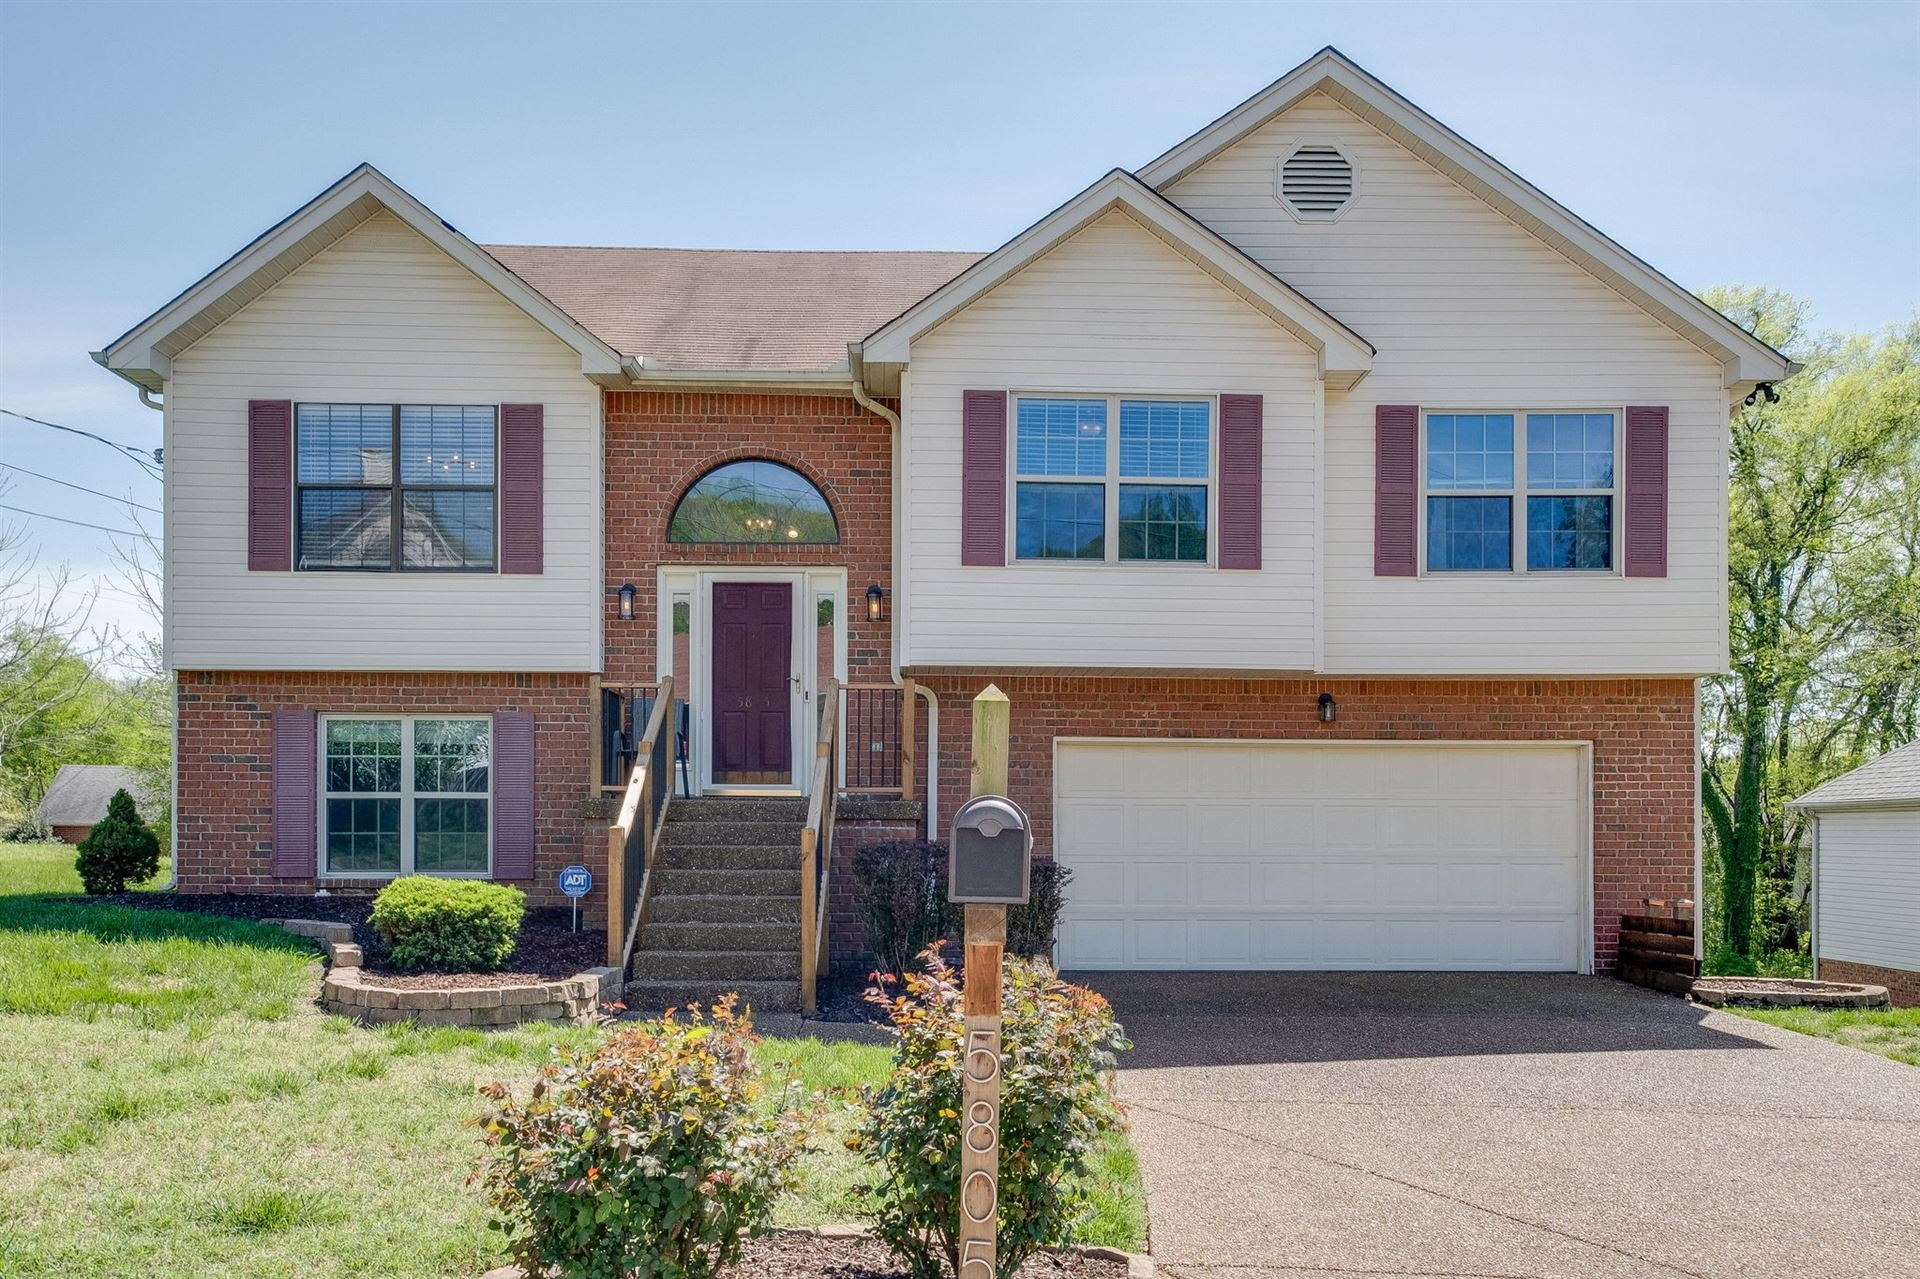 Photo of 5805 Scout Dr, Nashville, TN 37211 (MLS # 2156650)